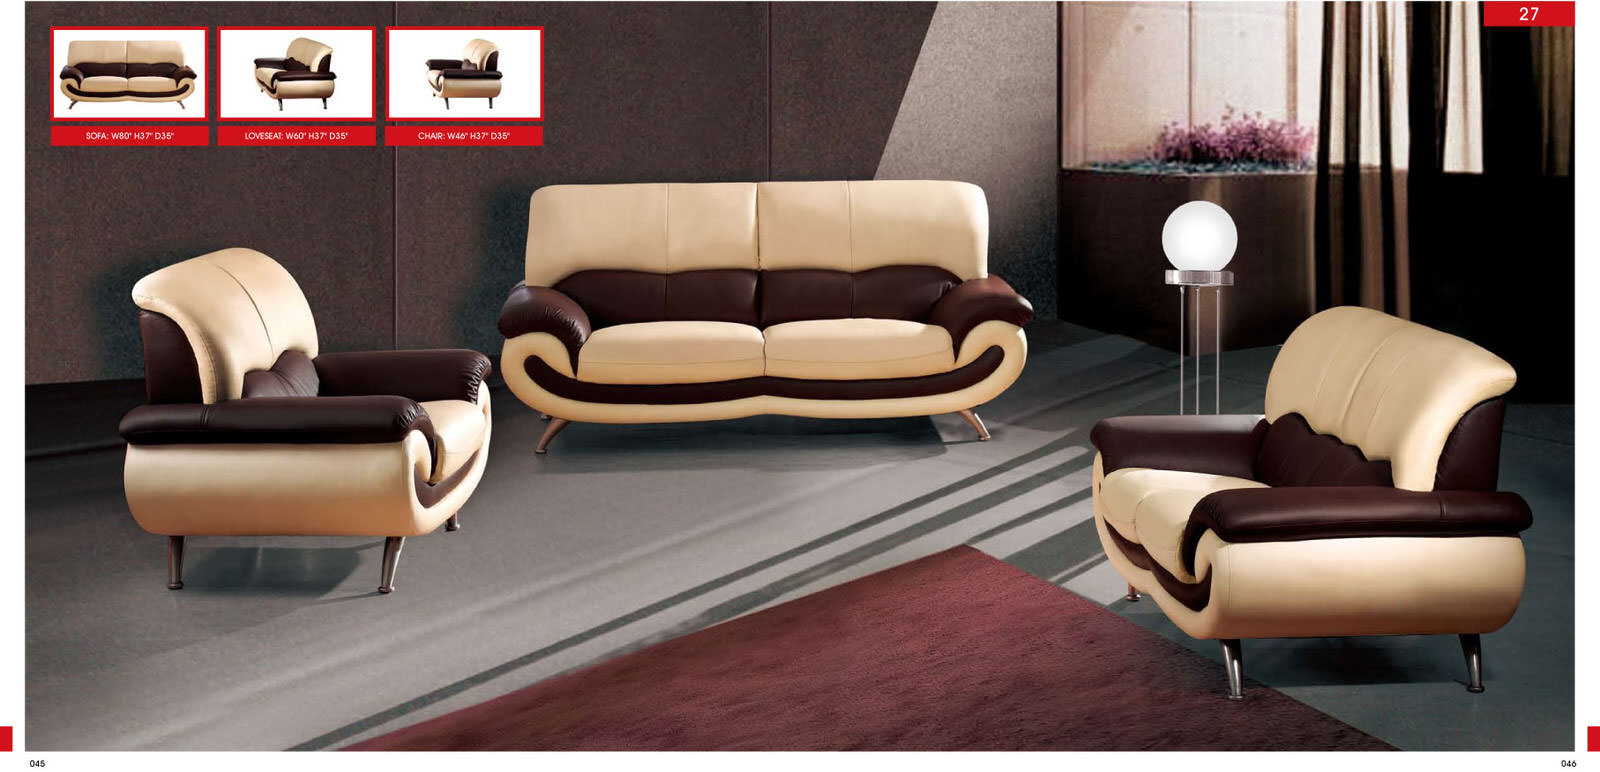 Villa Romantica - Cucina Italiana 82140 Olching Brown And Cream Leather Sofas